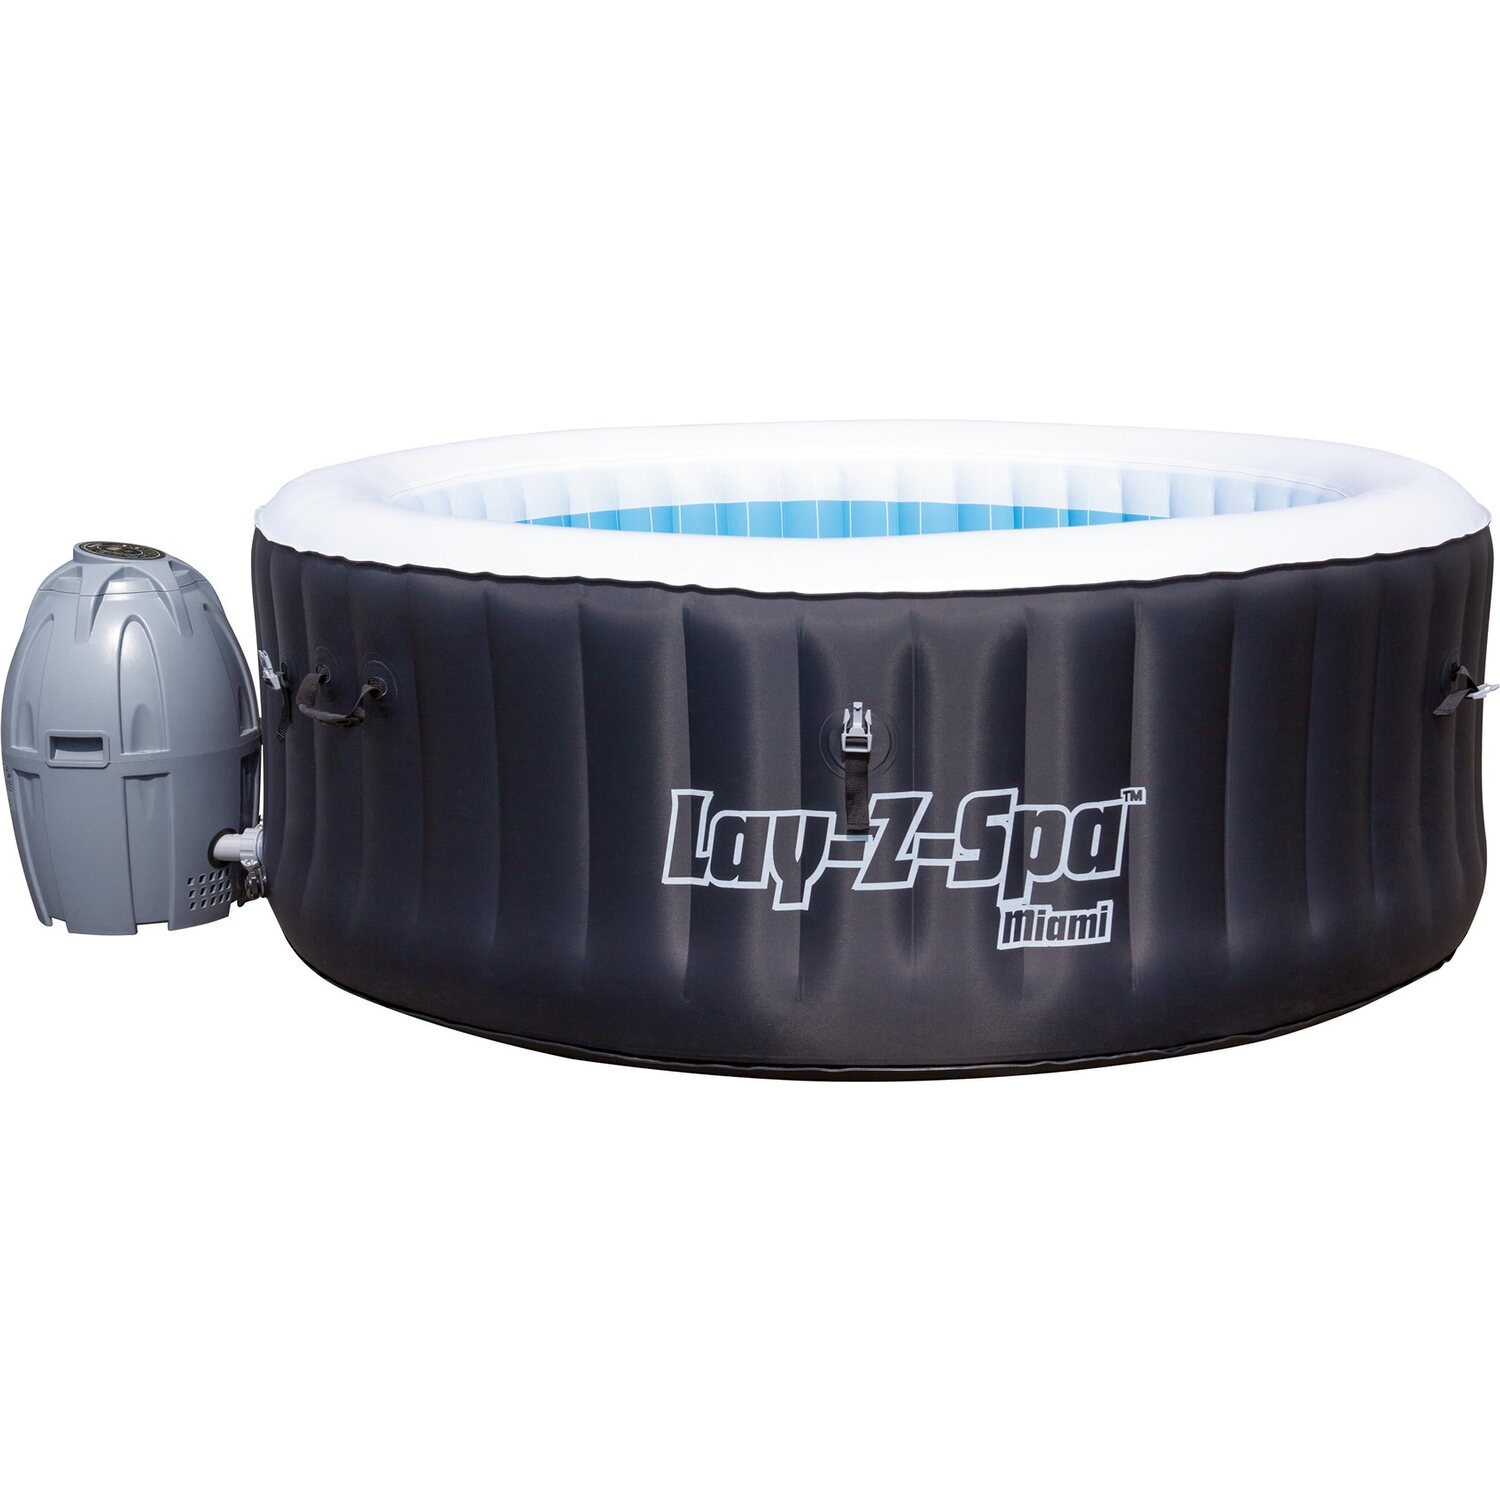 Bestway whirl pool lay z spa whirlpool miami kaufen bei obi for Bestway pool obi